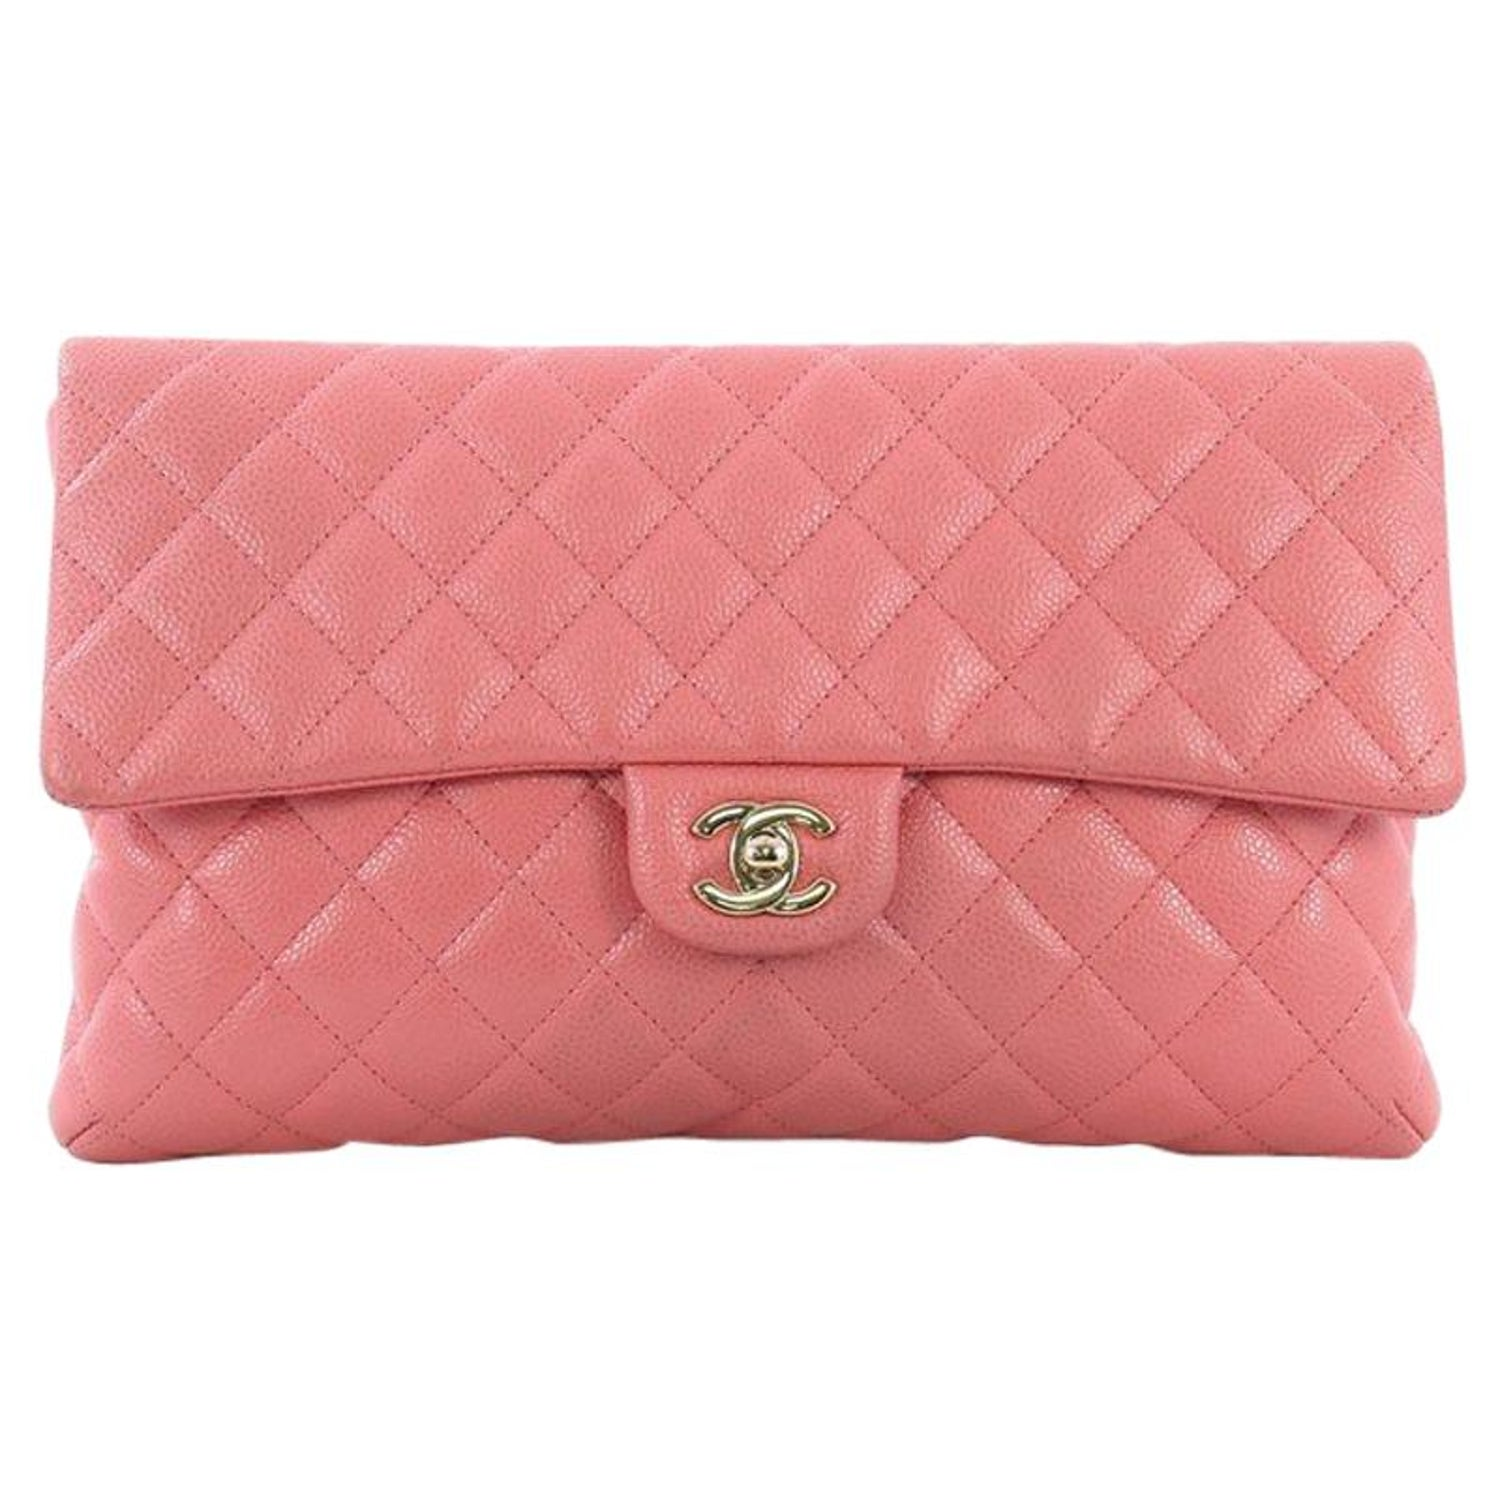 e0e3f2105f66da Chanel Classic Flap Clutch Quilted Caviar at 1stdibs